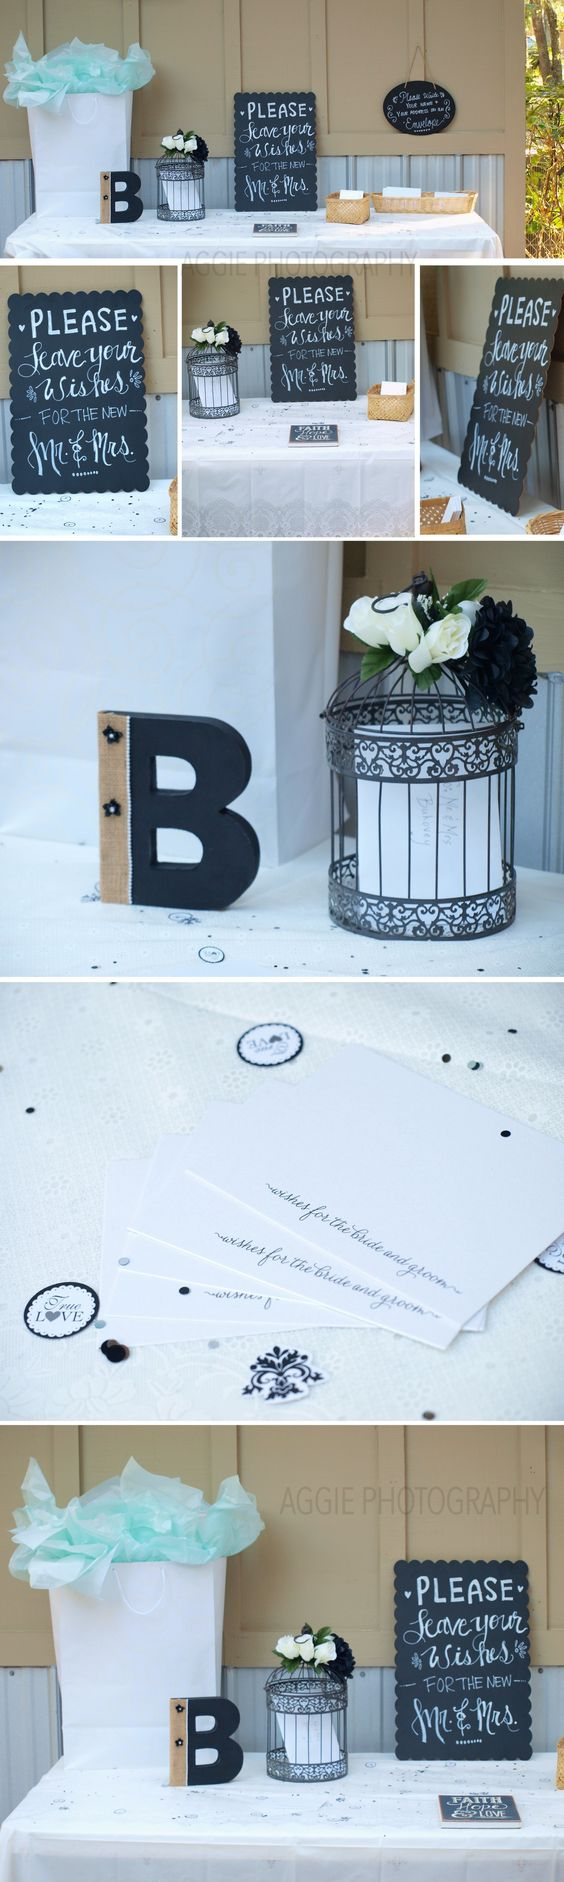 Teal, Black and White Bridal wedding colors :) Loved this combination!